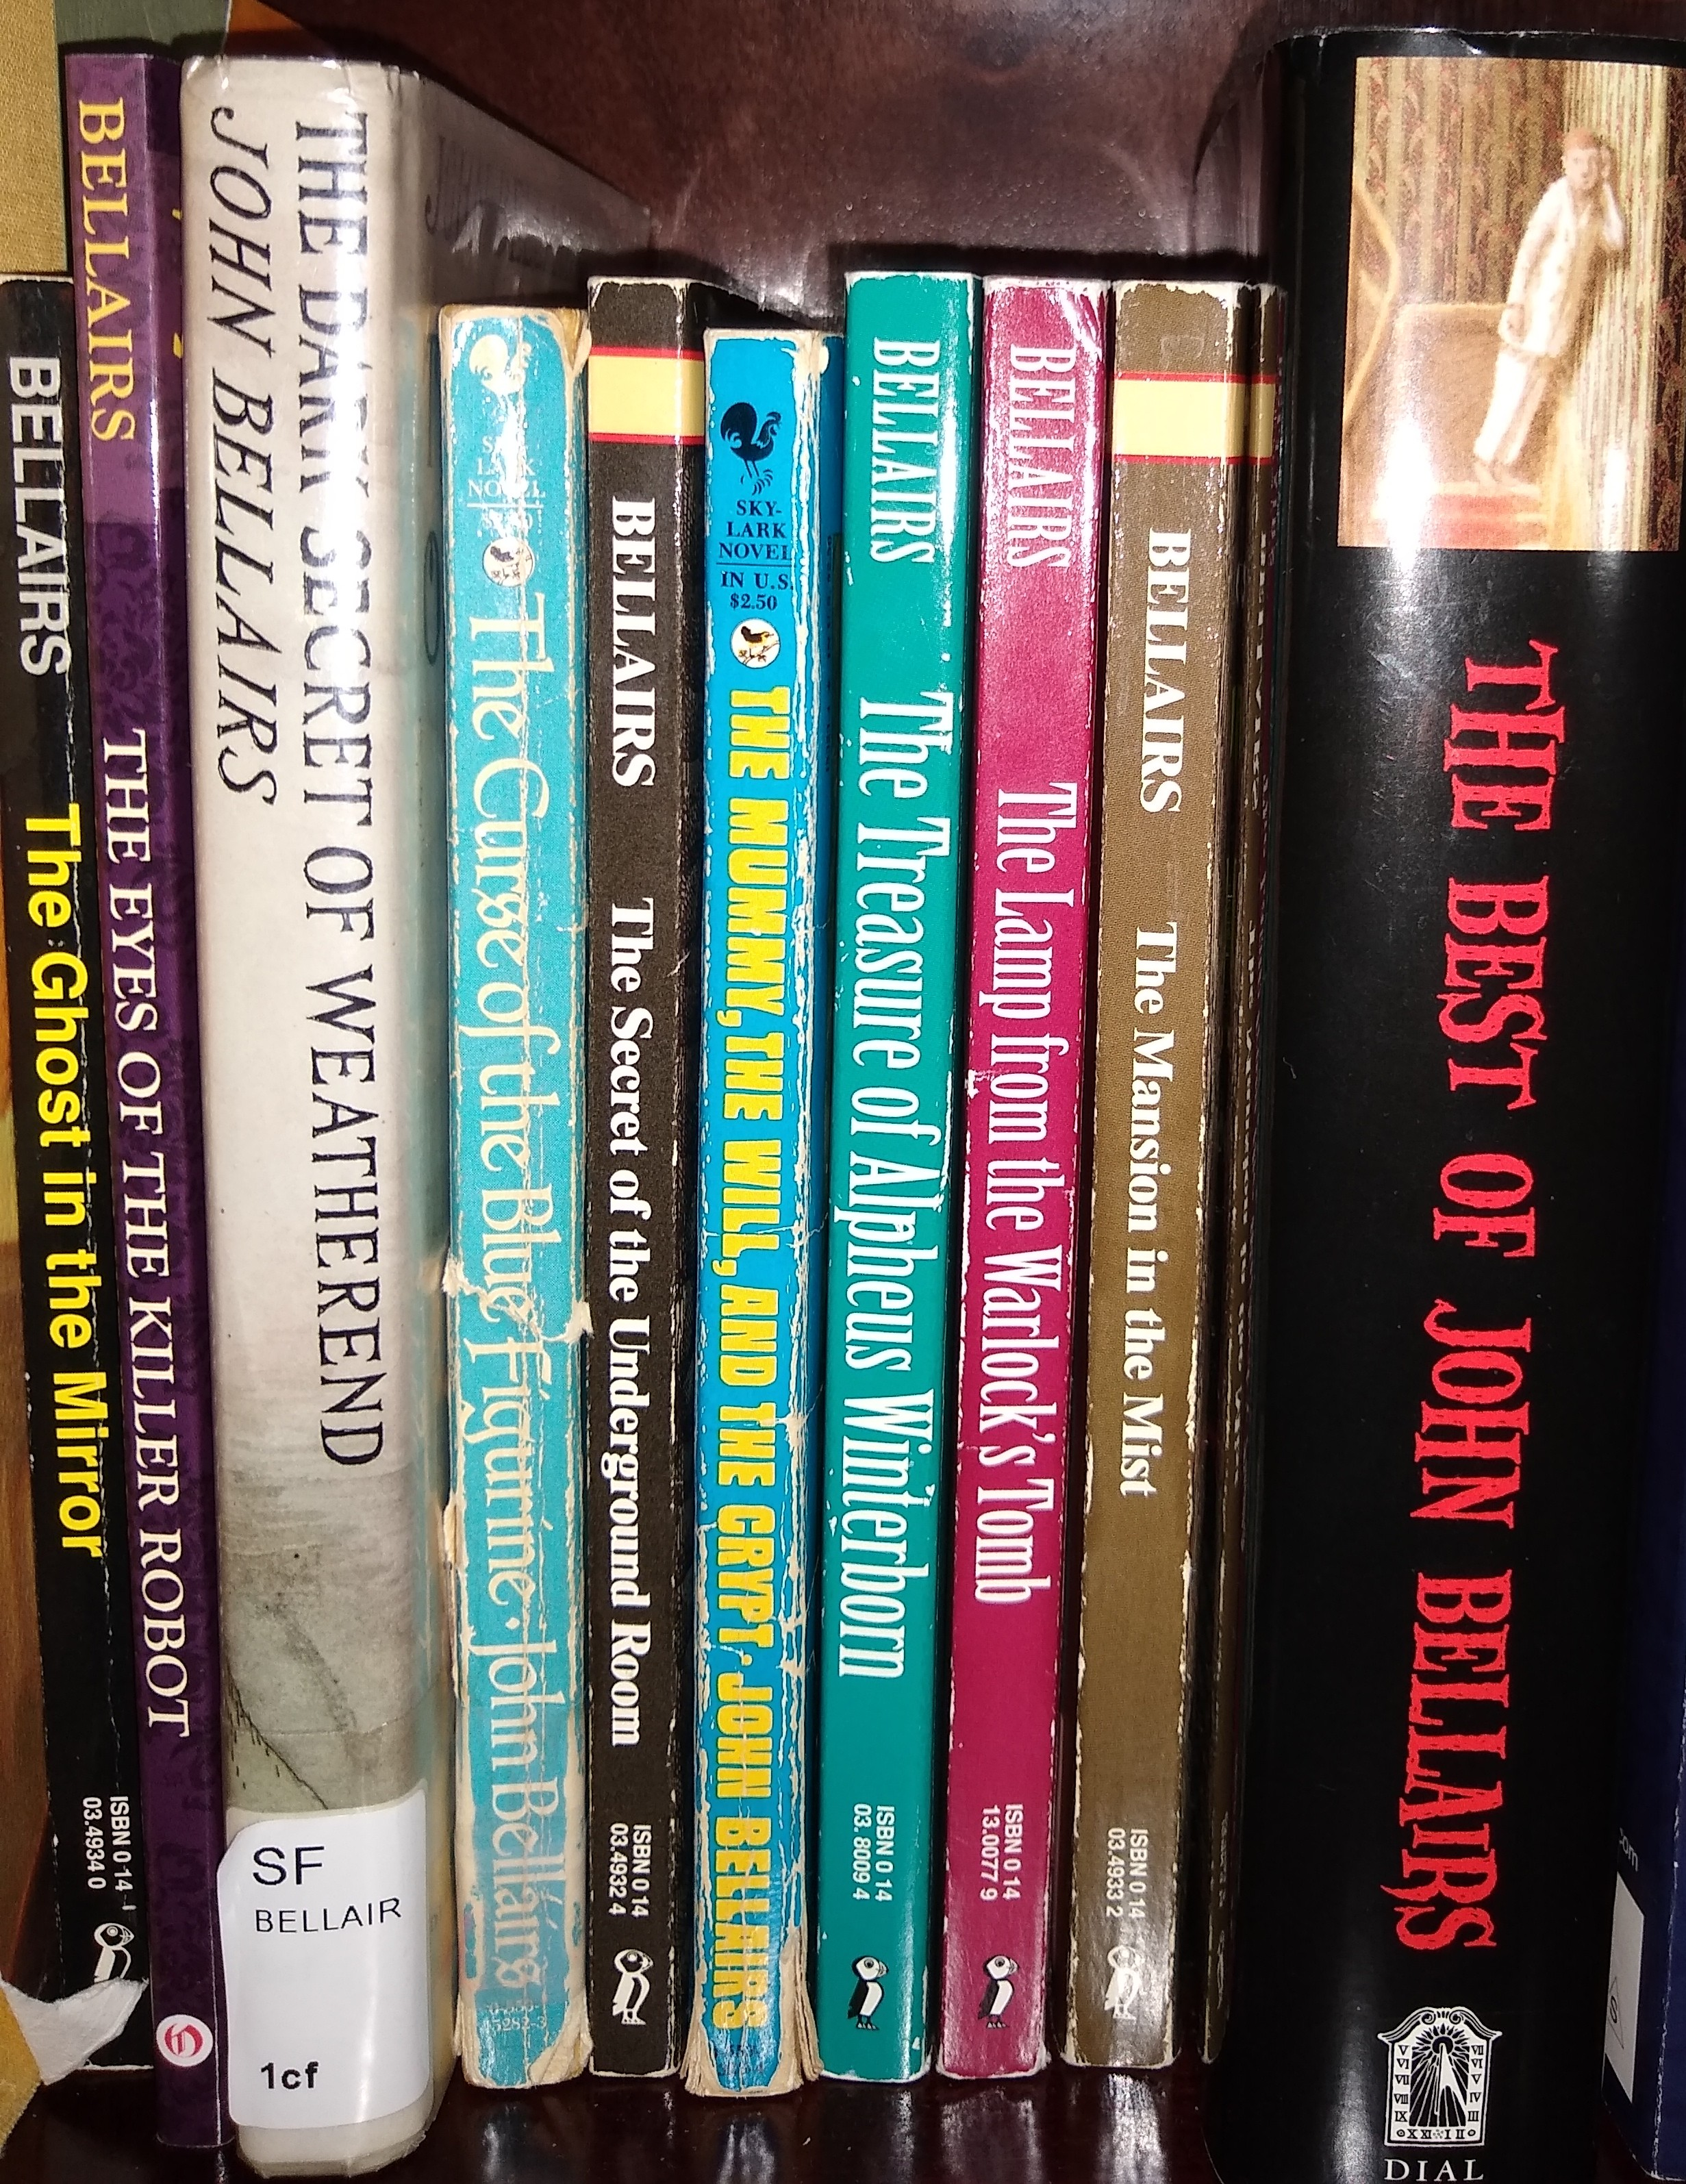 John Bellairs Book Spines by Todd Wellman